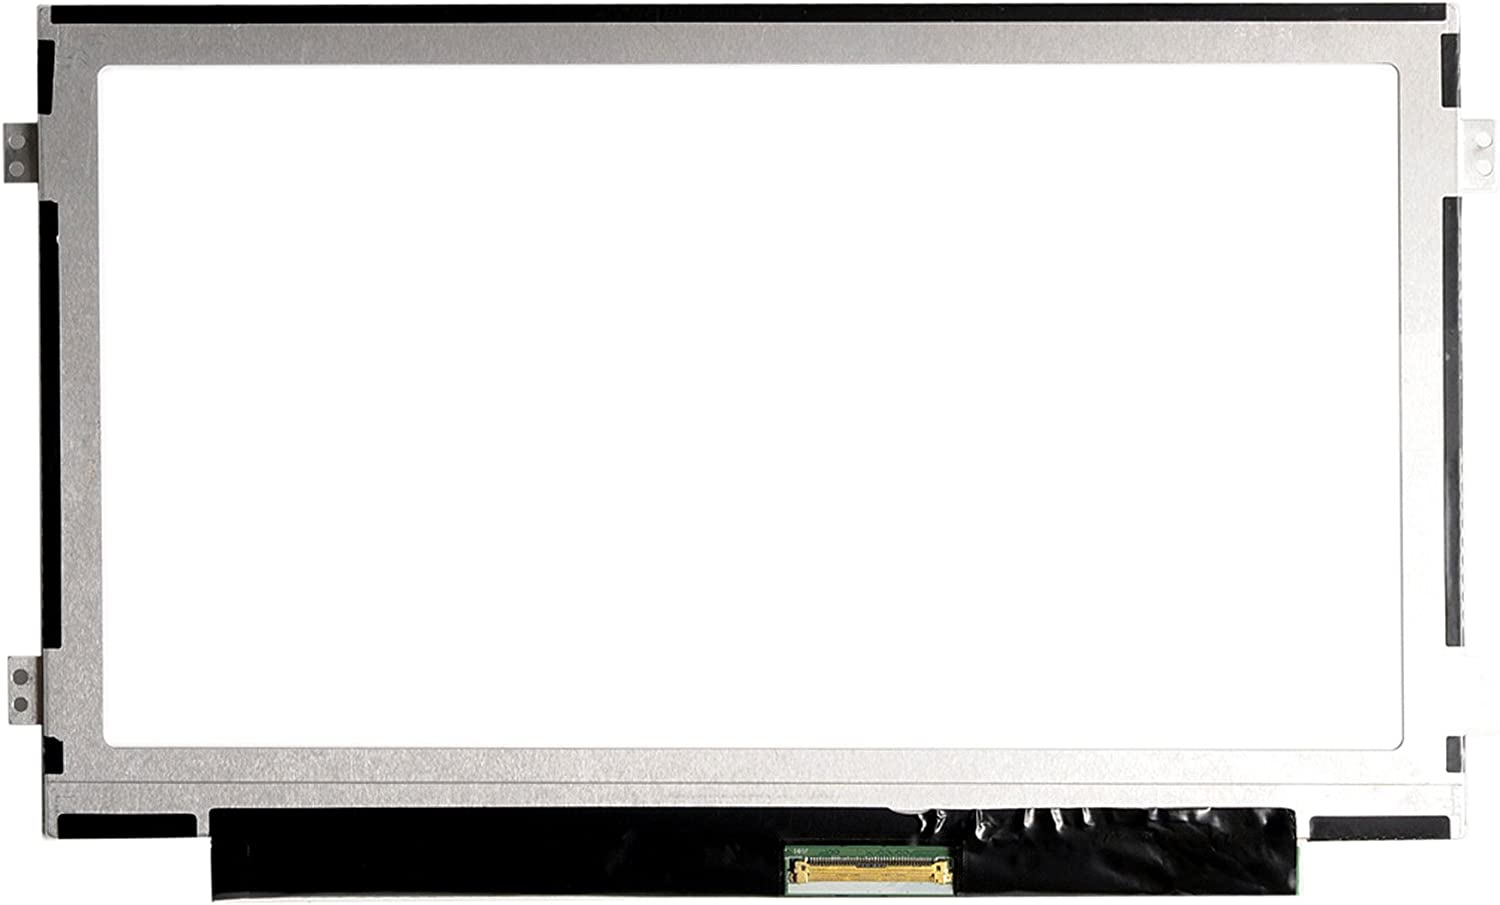 "Acer Aspire One D270-1865 Laptop LCD Screen 10.1"" WSVGA LED ( Compatible Replacement)"